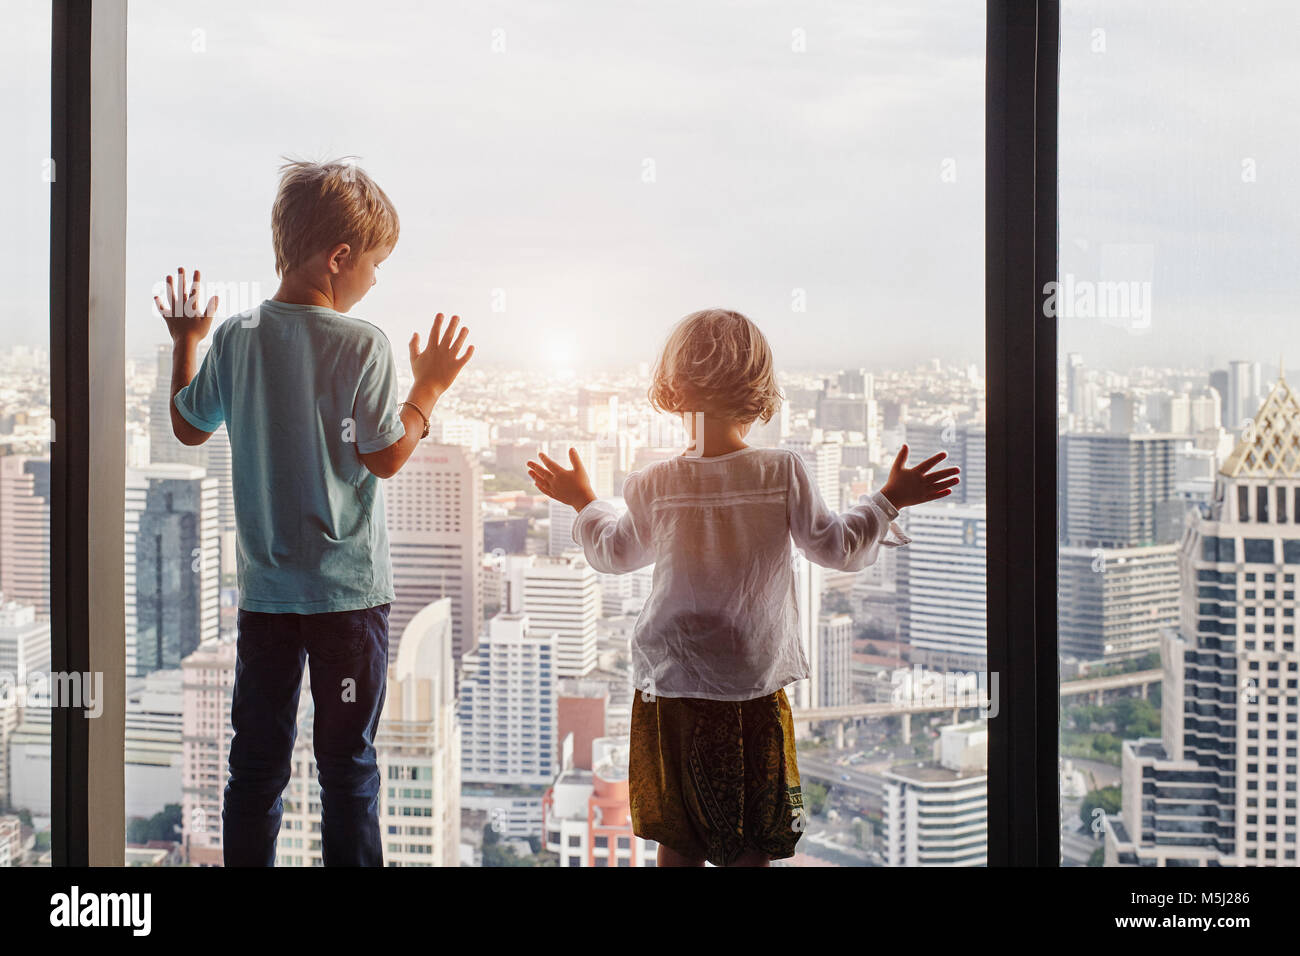 Thailand, Bangkok, boy and little girl looking through window at cityscape - Stock Image